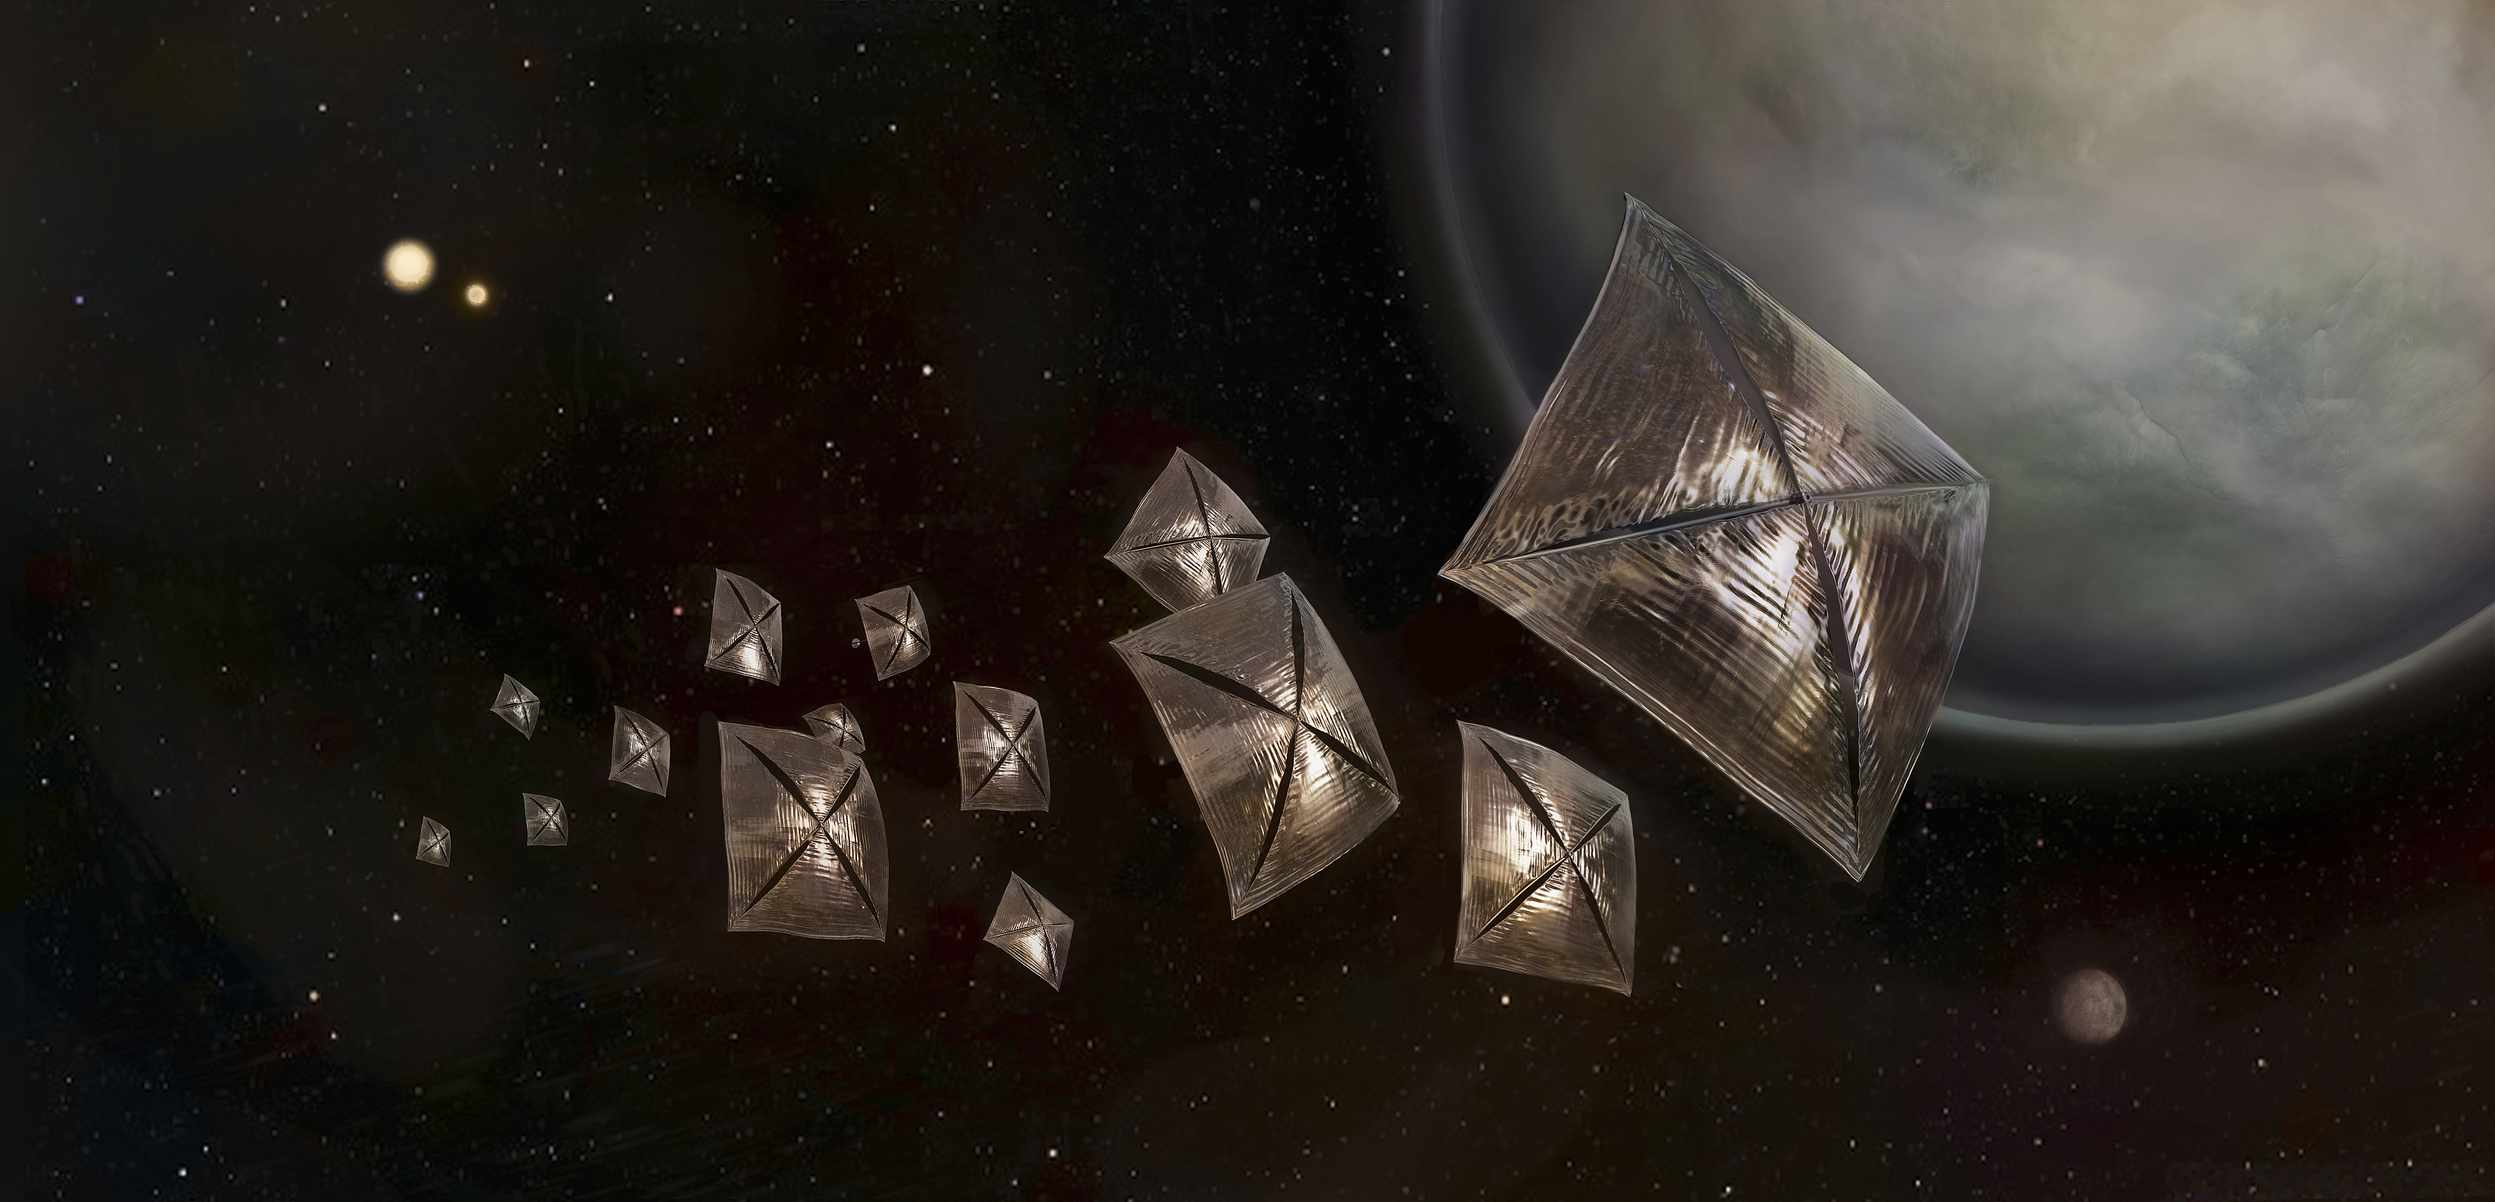 Illustration of a future solar sailing spacecraft studying the exoplanets in the Centauri system